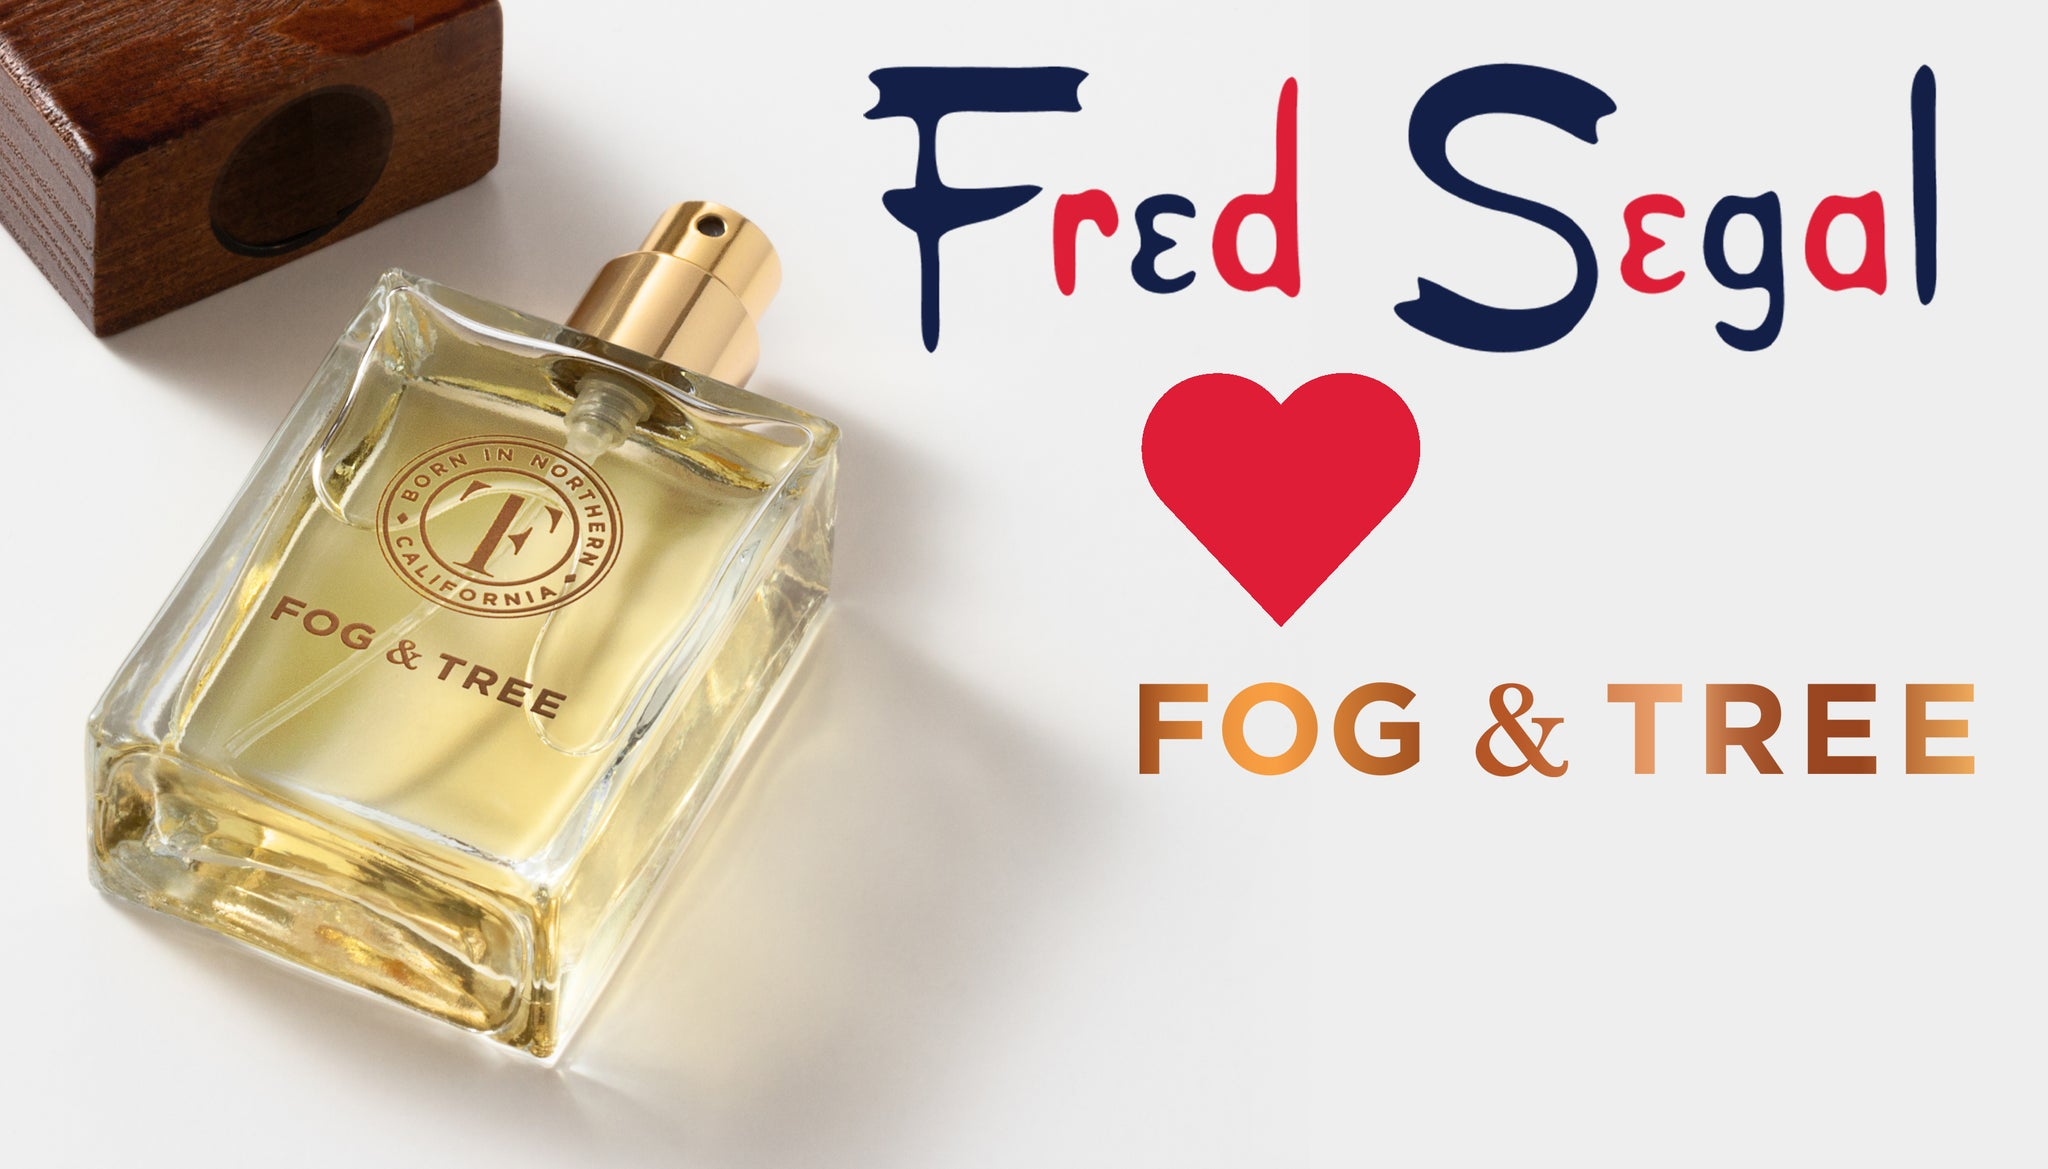 Fog & Tree launches at Fred Segal